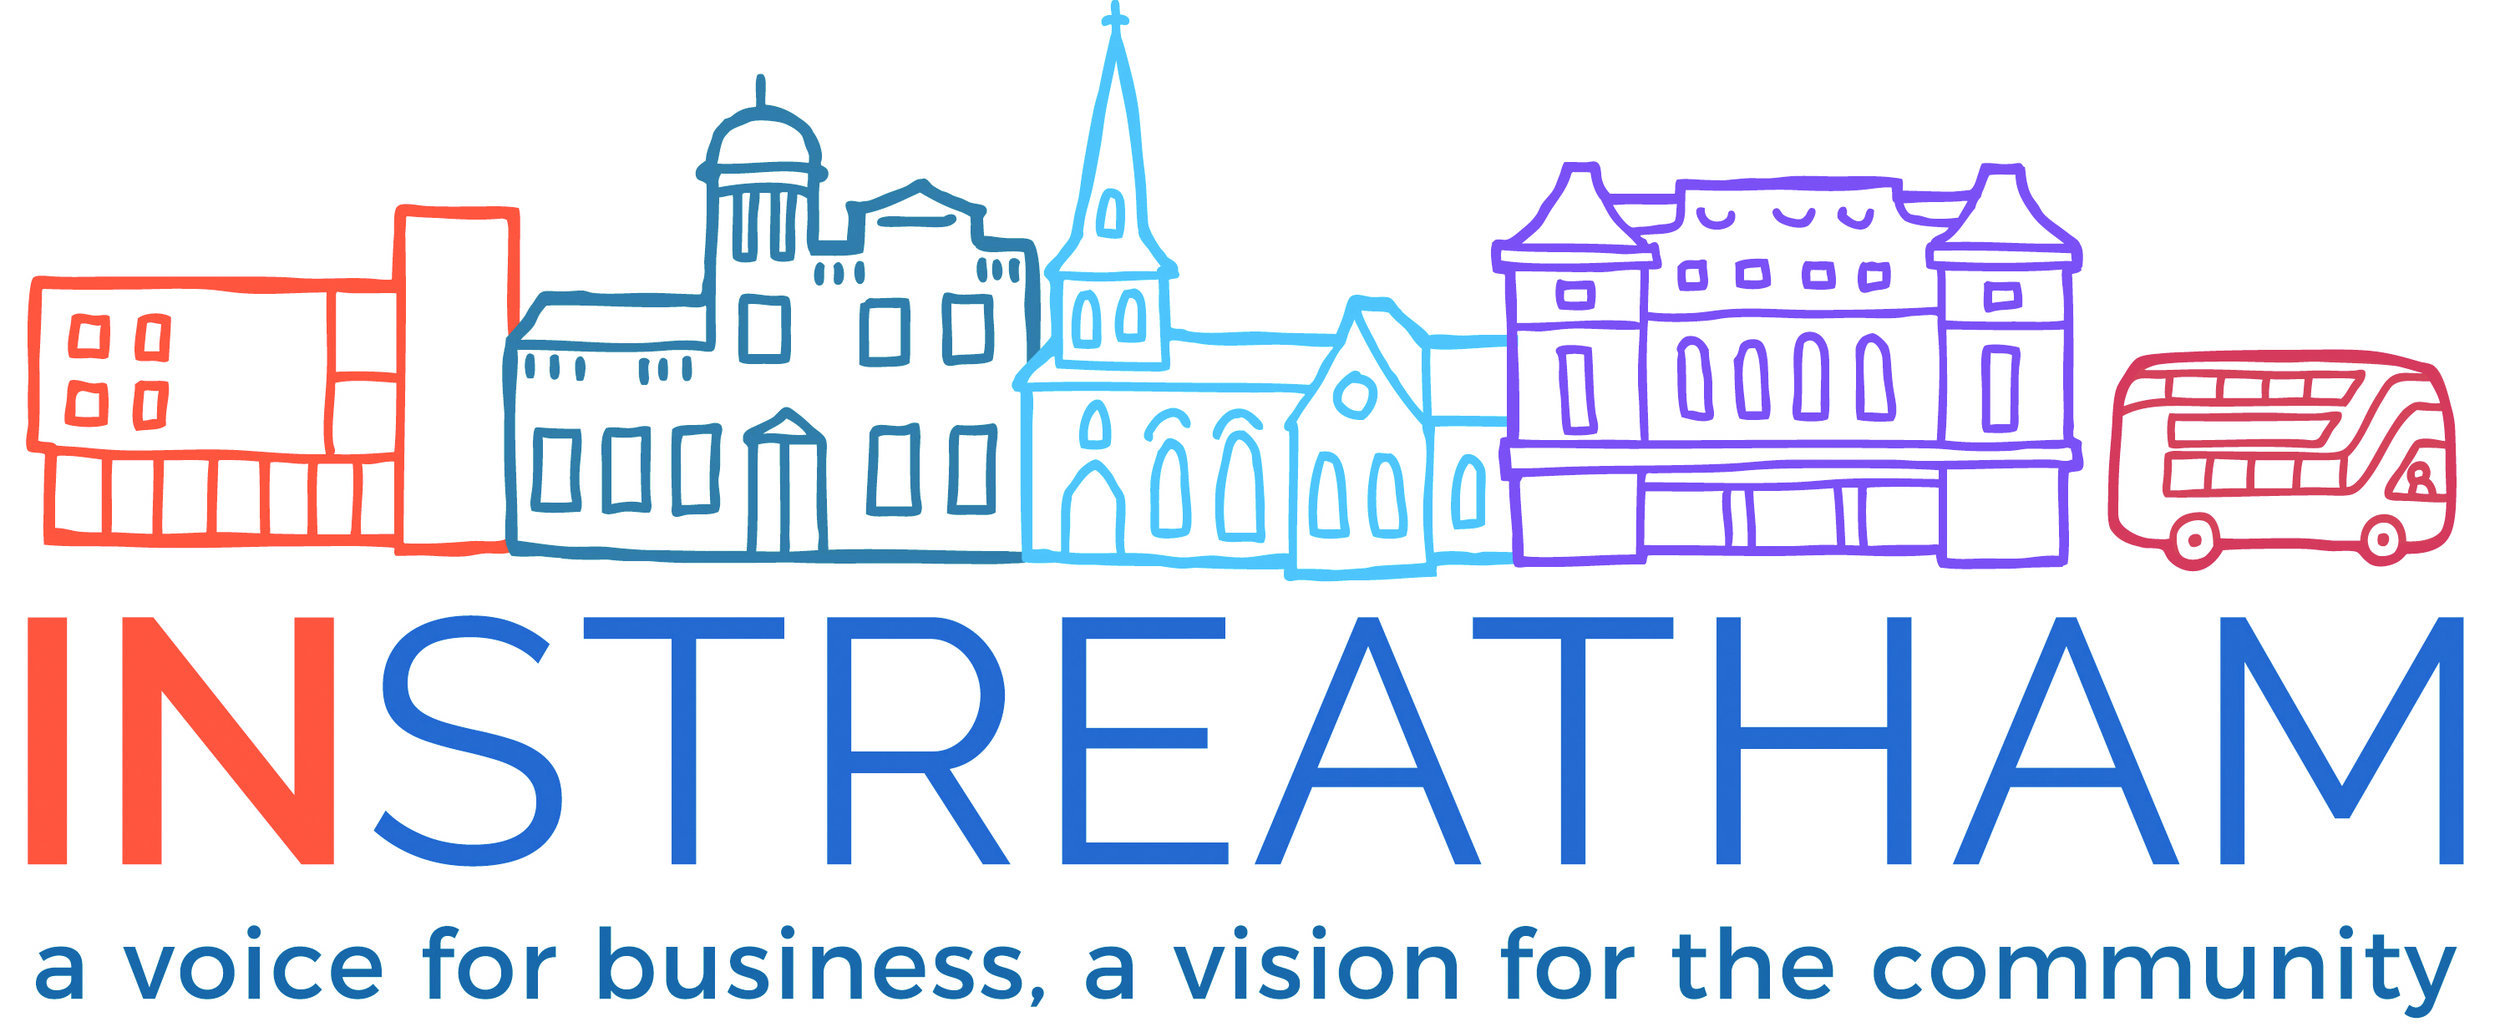 inStreatham.  A voice for business. A vision for the community. A future together.